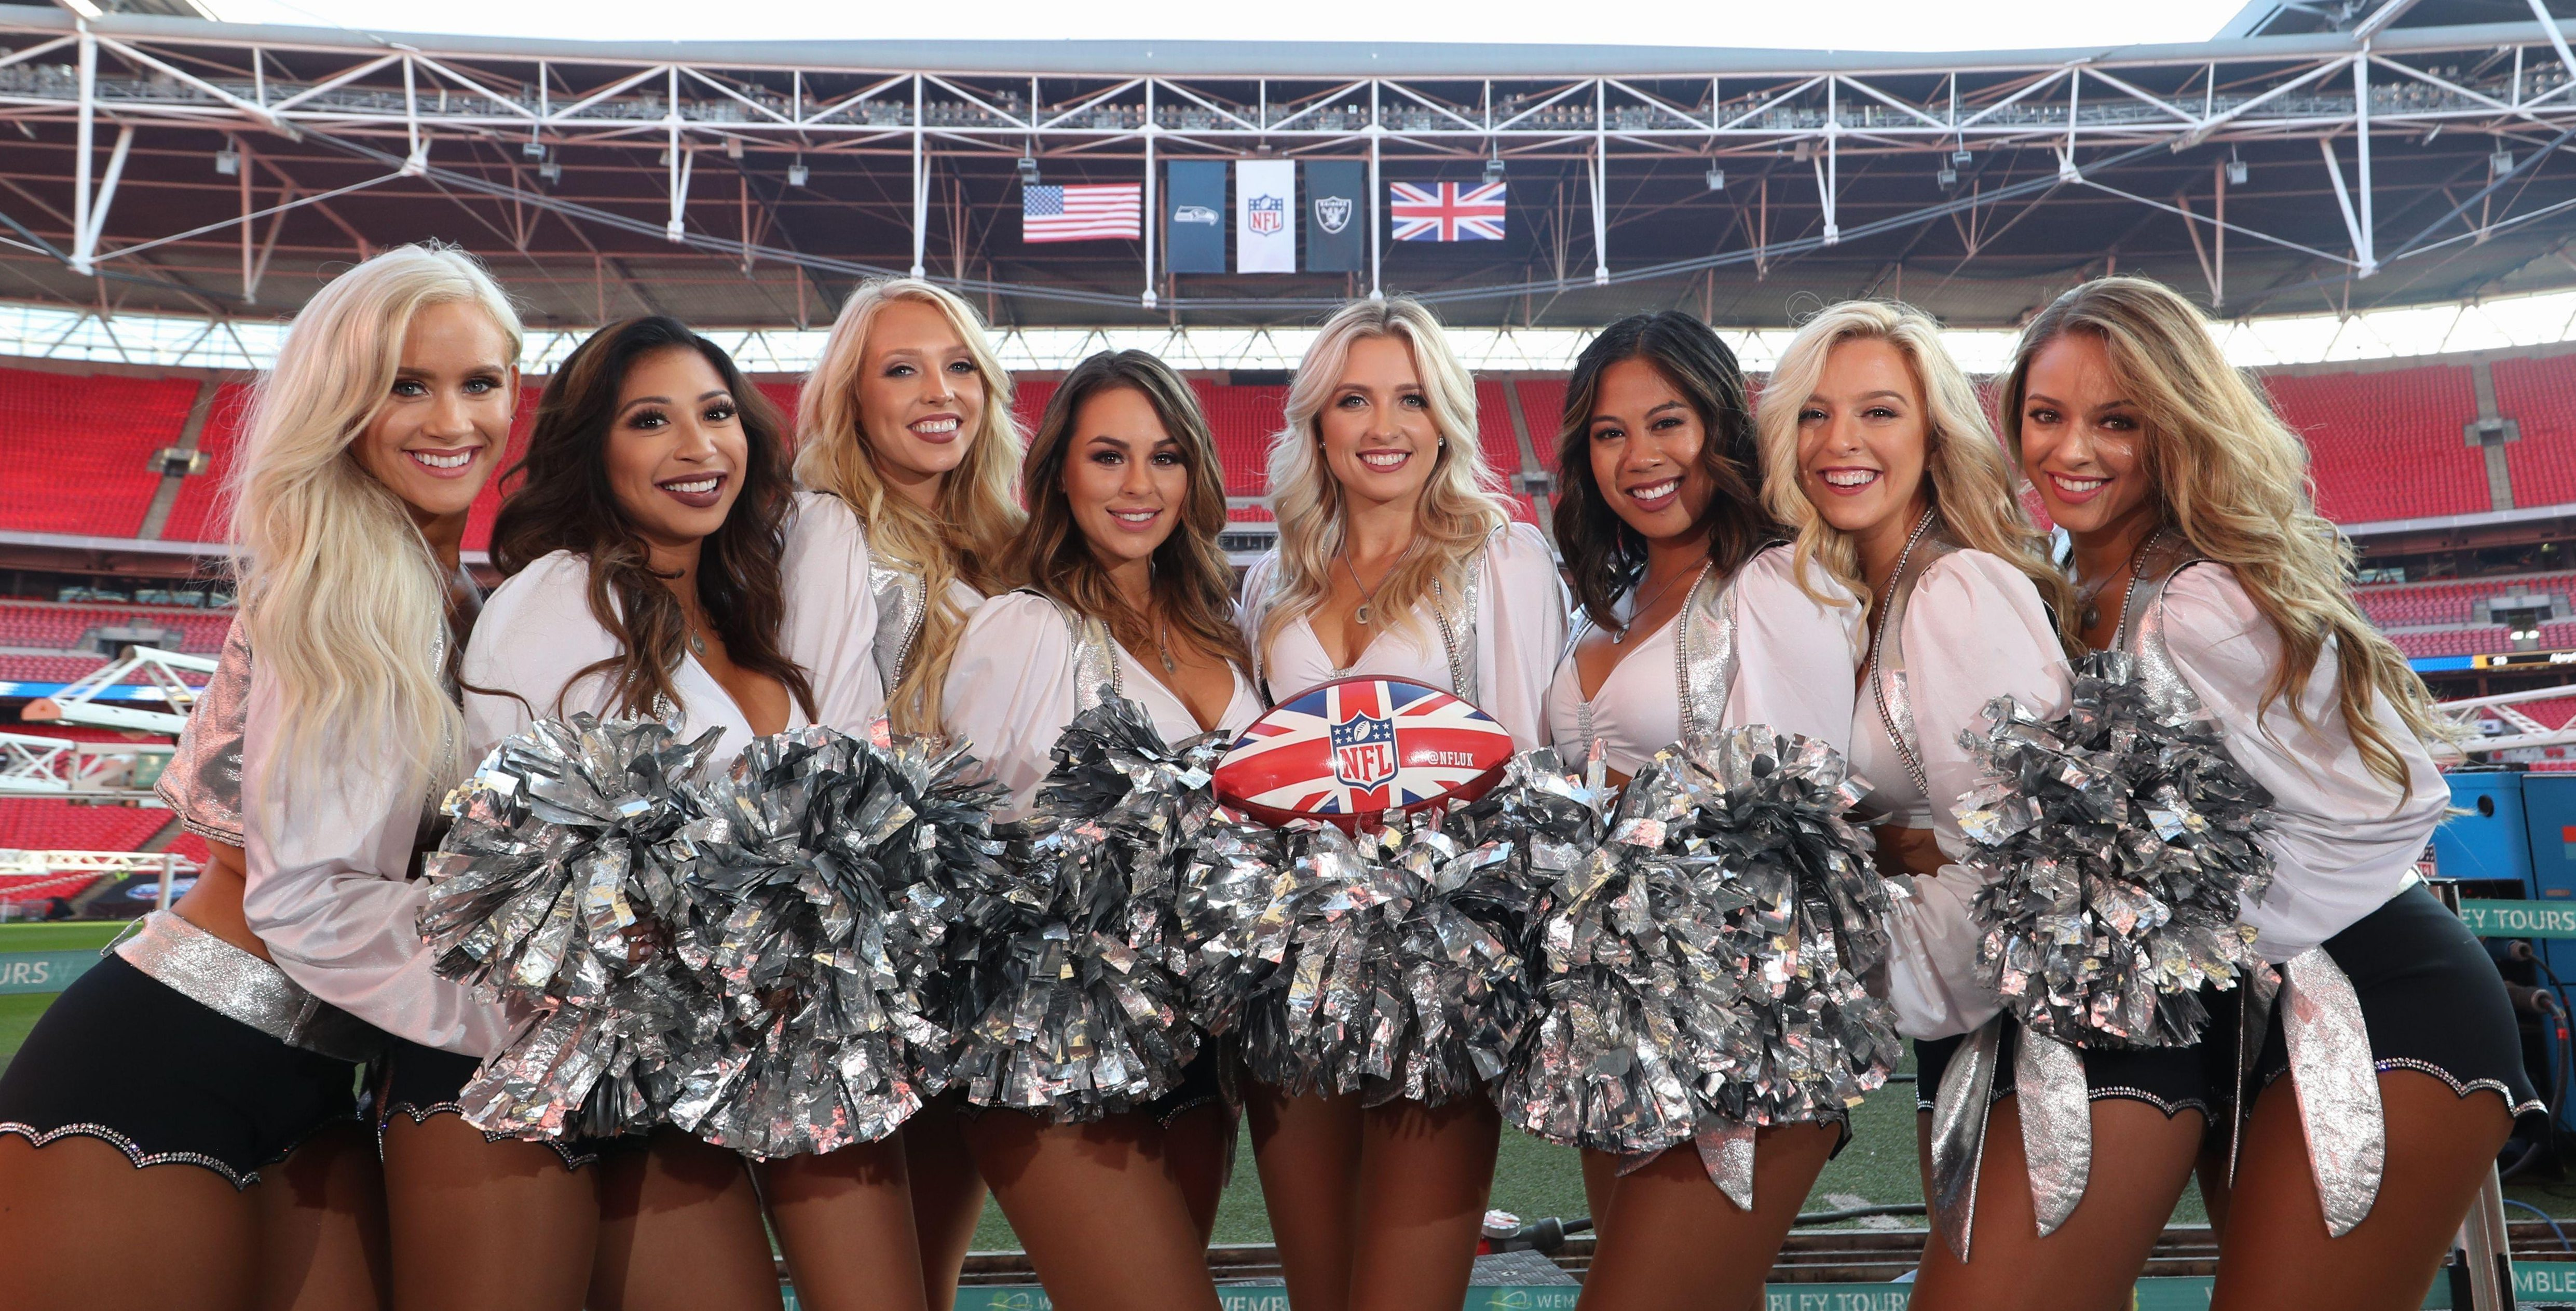 The Oakland Raiders cheerleaders have taken time out from their day jobs to jet to London